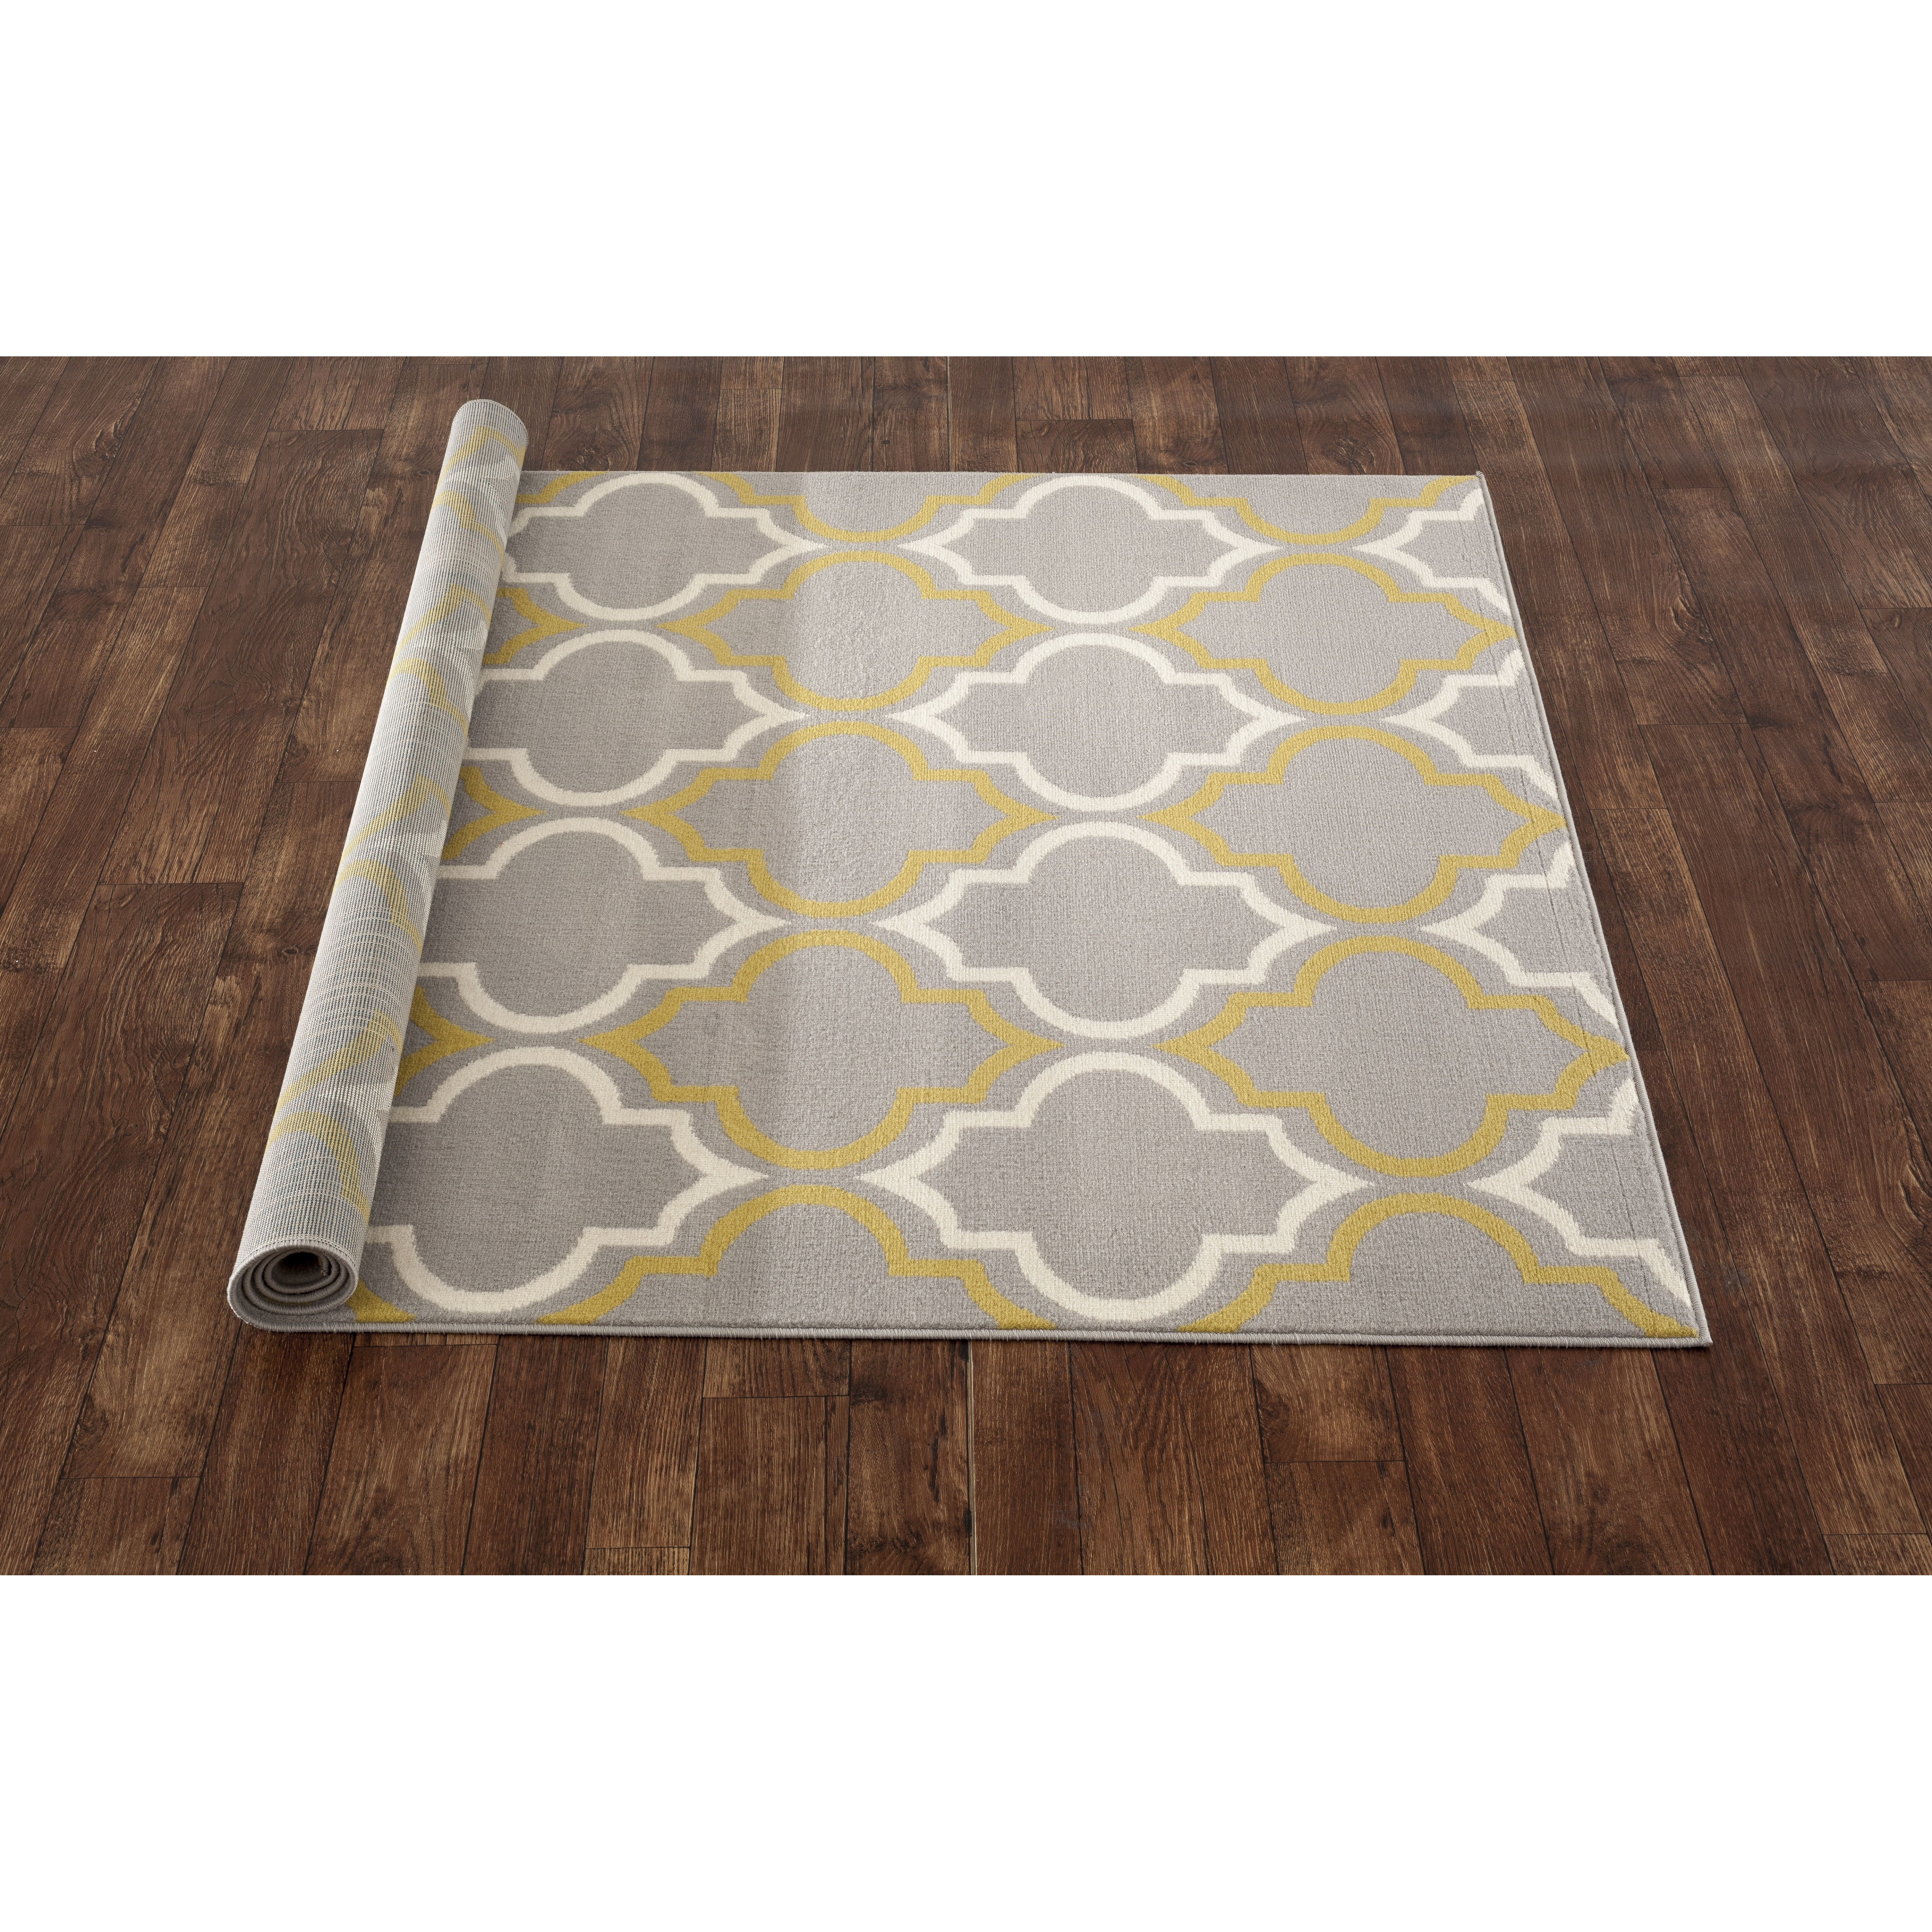 Best World Rug Gallery Newport Gray / Yellow Area Rug yellow grey area rug